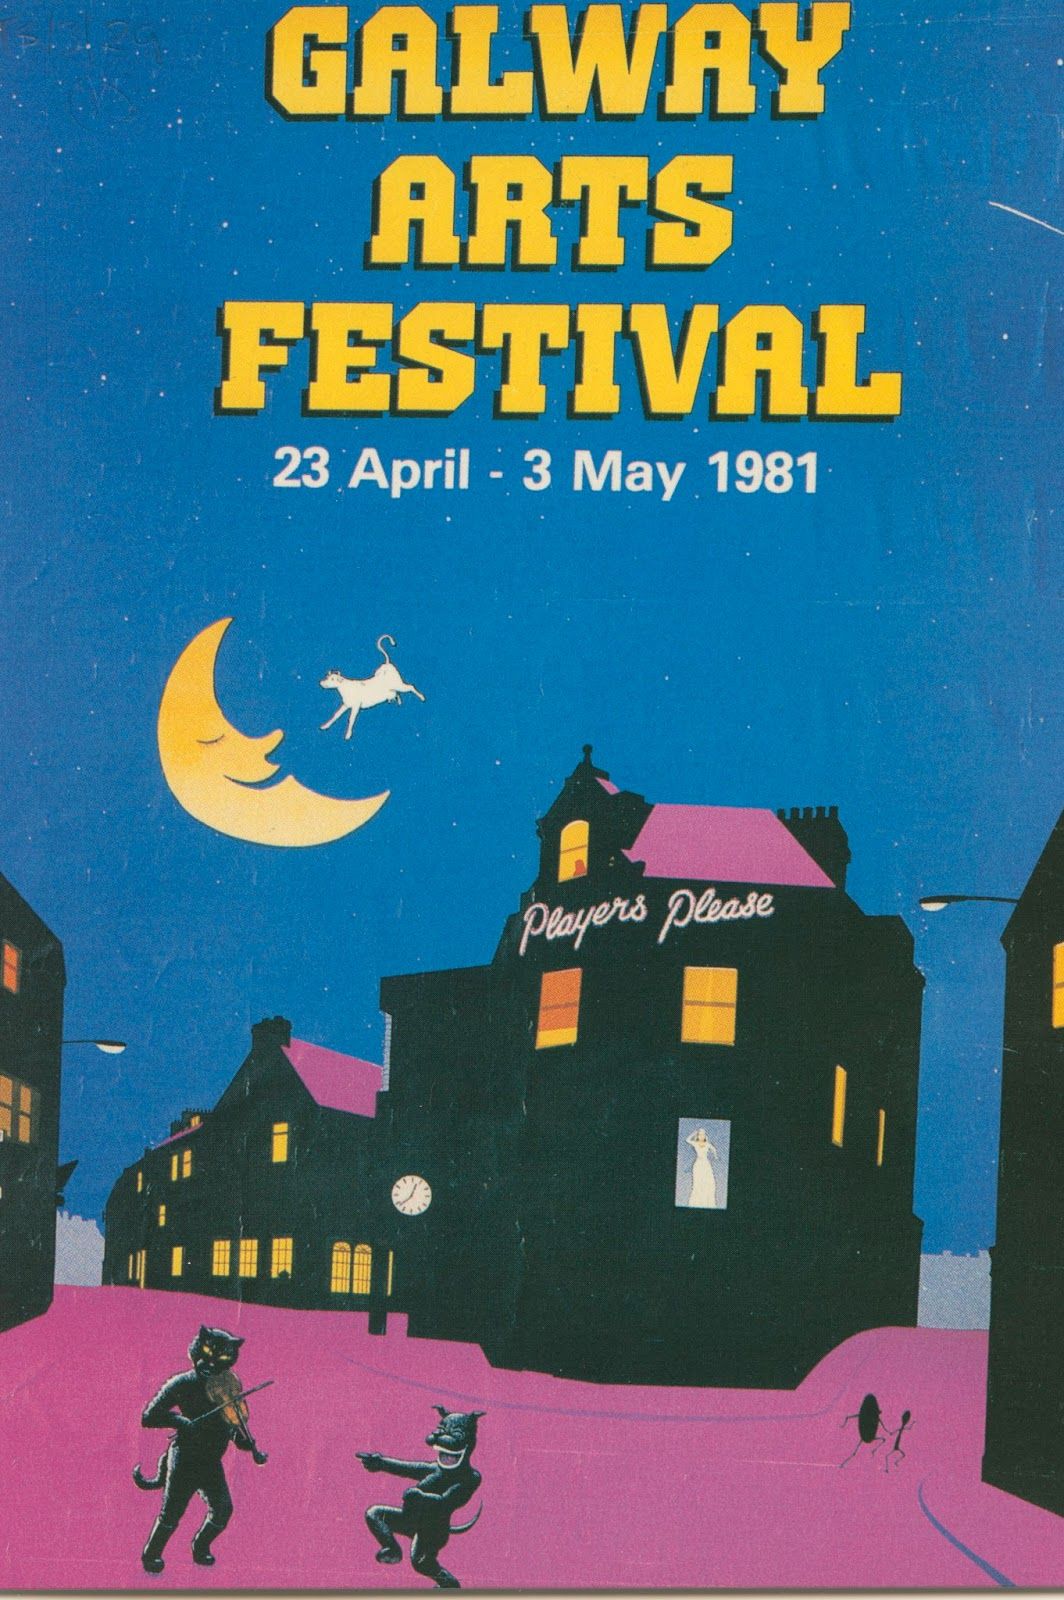 Poster design galway - For Any Visitors To The Galway International Arts Festival And Are Curious About This Amazing Archive Collection Please Do Contact The Archives Service For